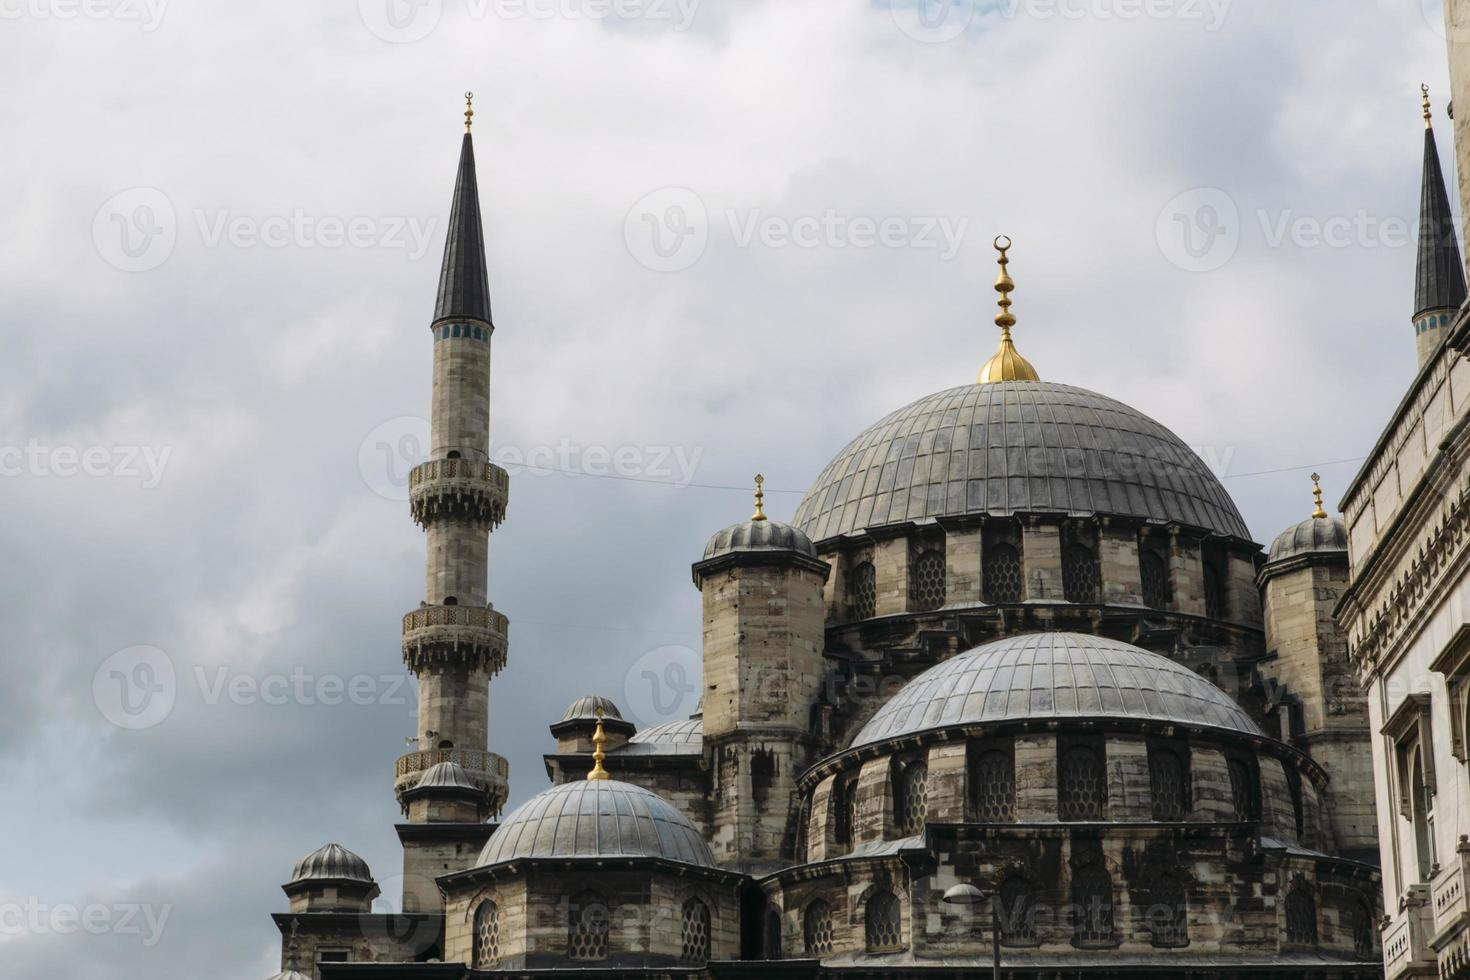 Yeni Cami, New Mosque,famous architectural of Istanbul. photo